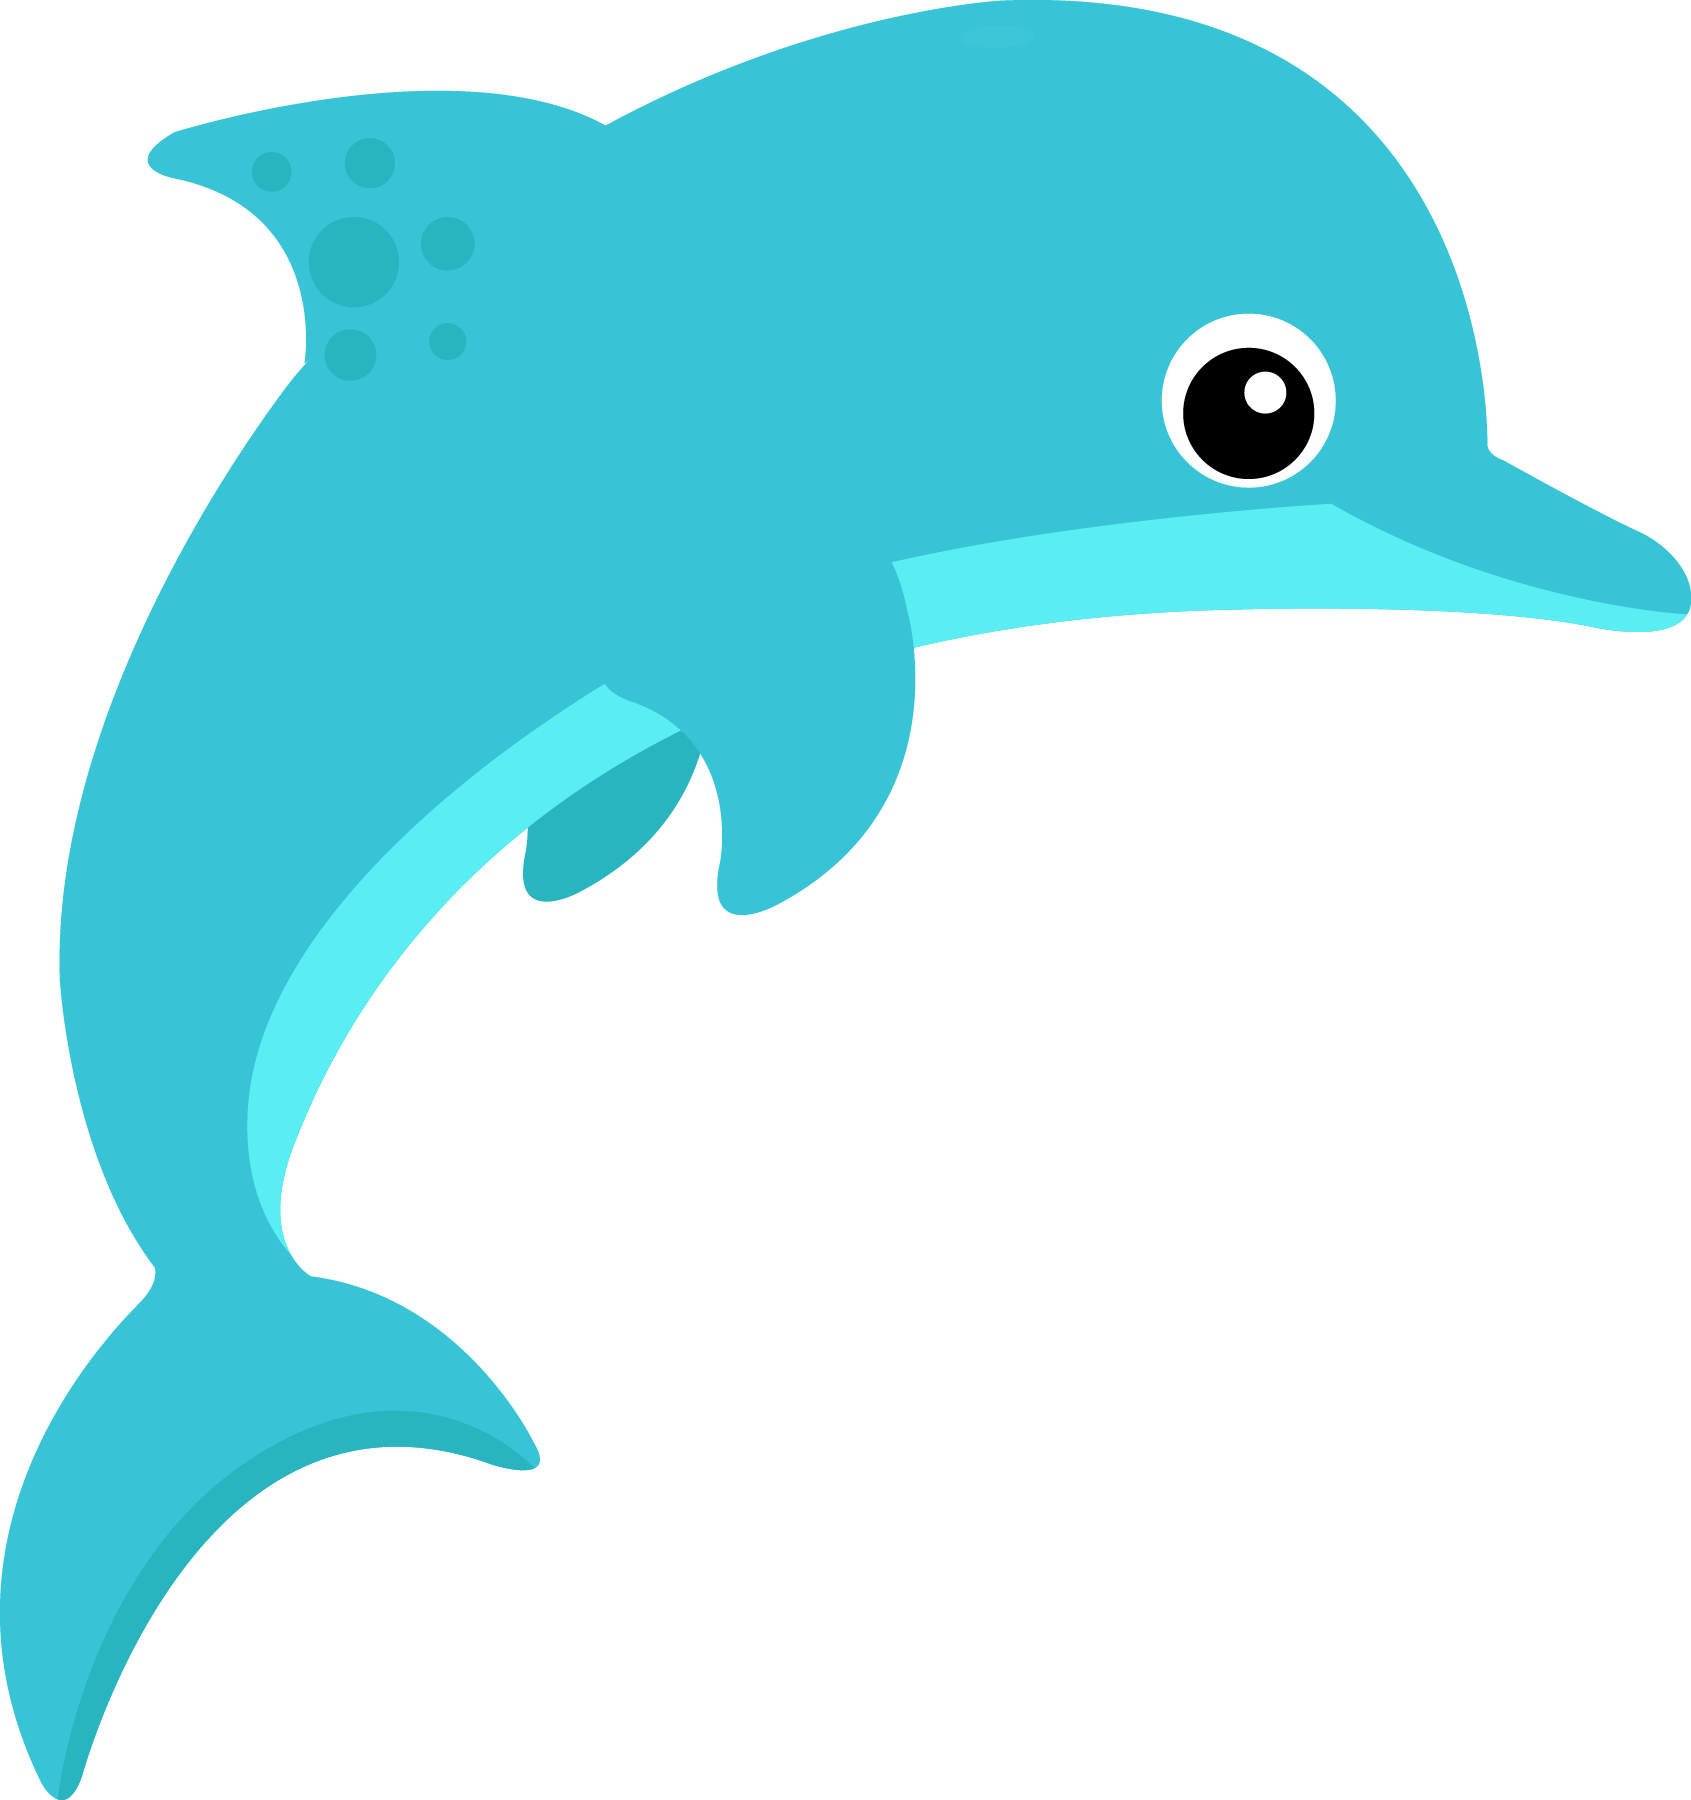 Baby car clipart picture transparent stock Sea Animals Clipart Free at GetDrawings.com | Free for personal use ... picture transparent stock